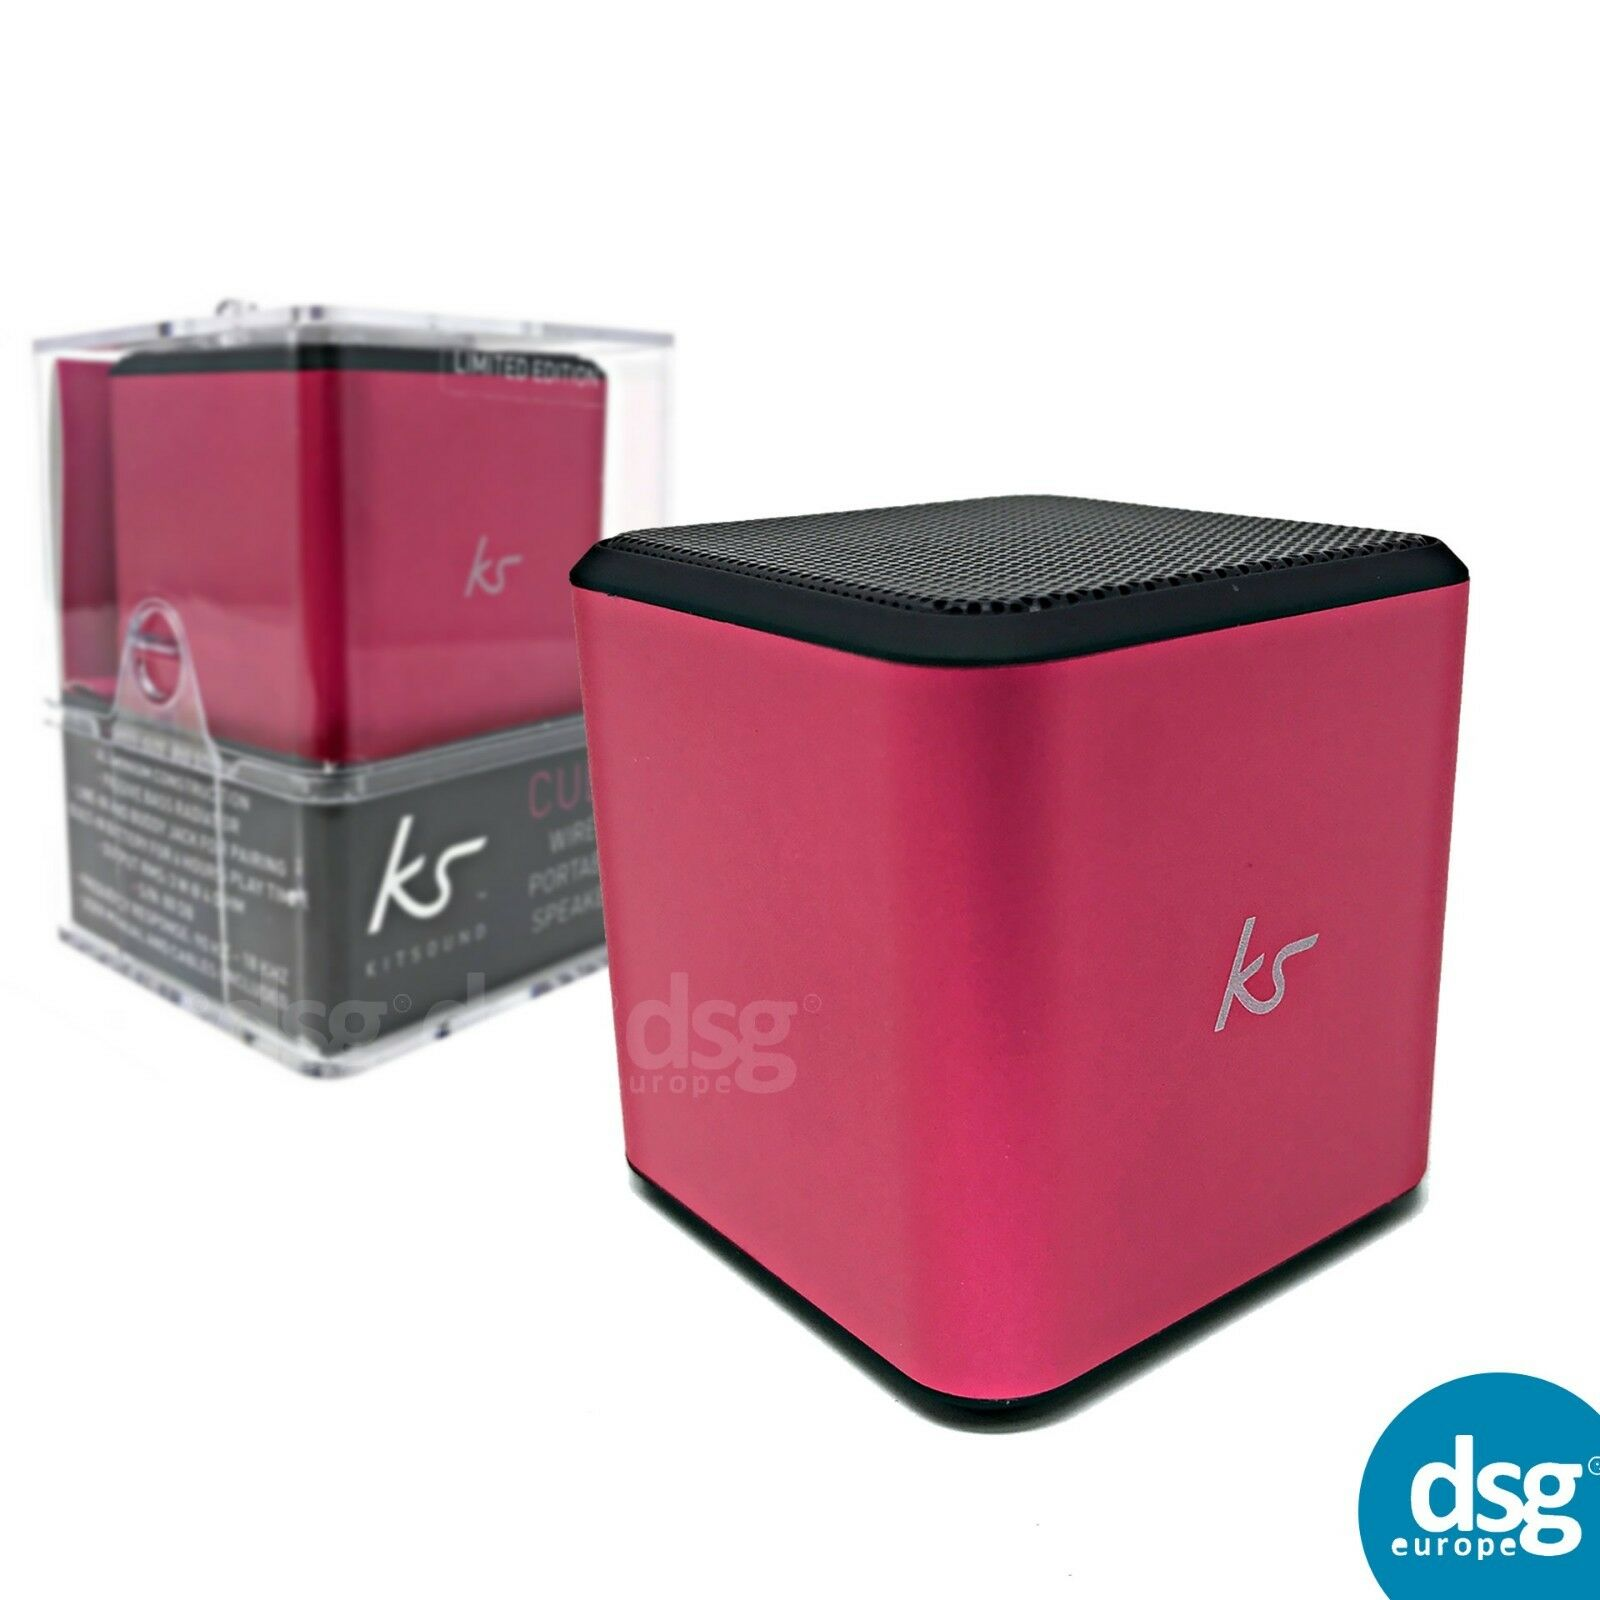 KitSound Cube Wired Mini  Rechargeable Portable Speaker £4.99 Free Postage